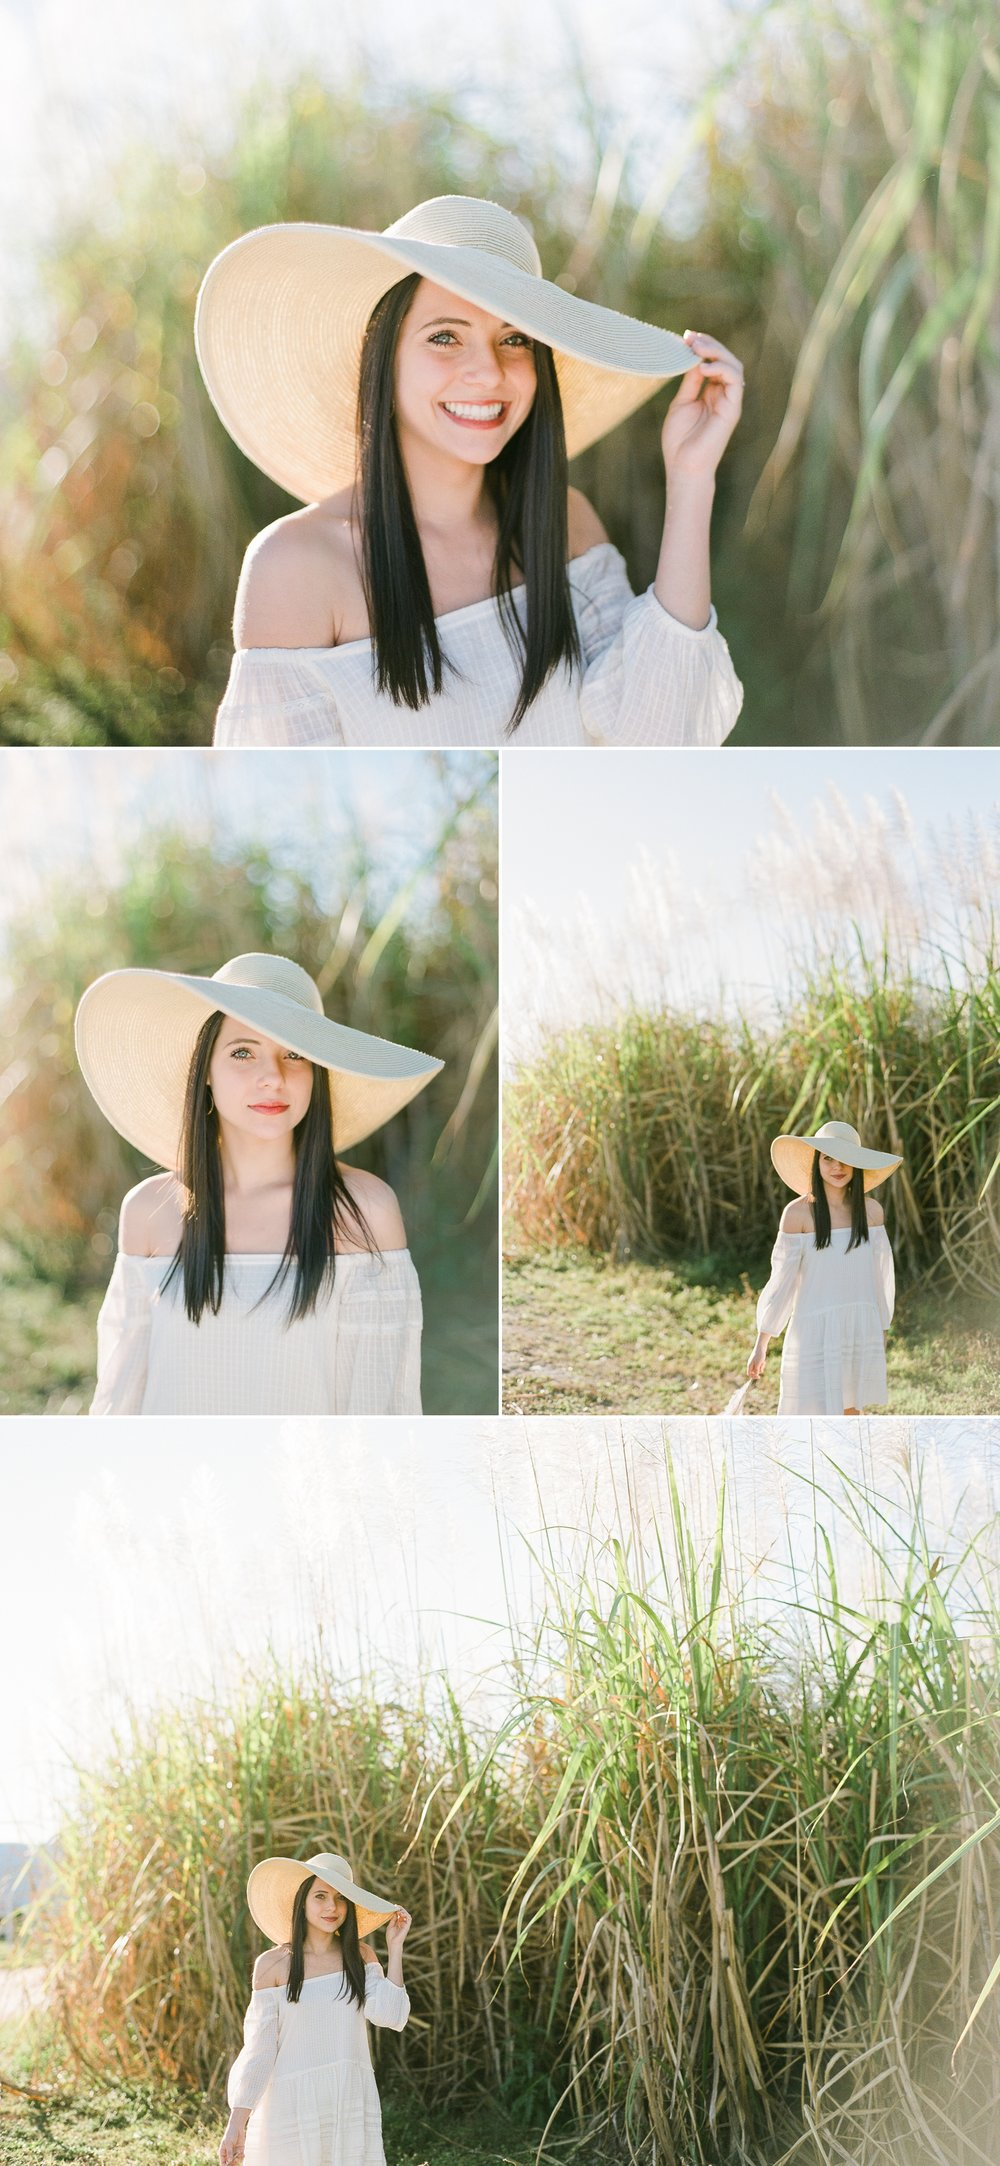 Sugarcane Inspired Shoot 2.jpg